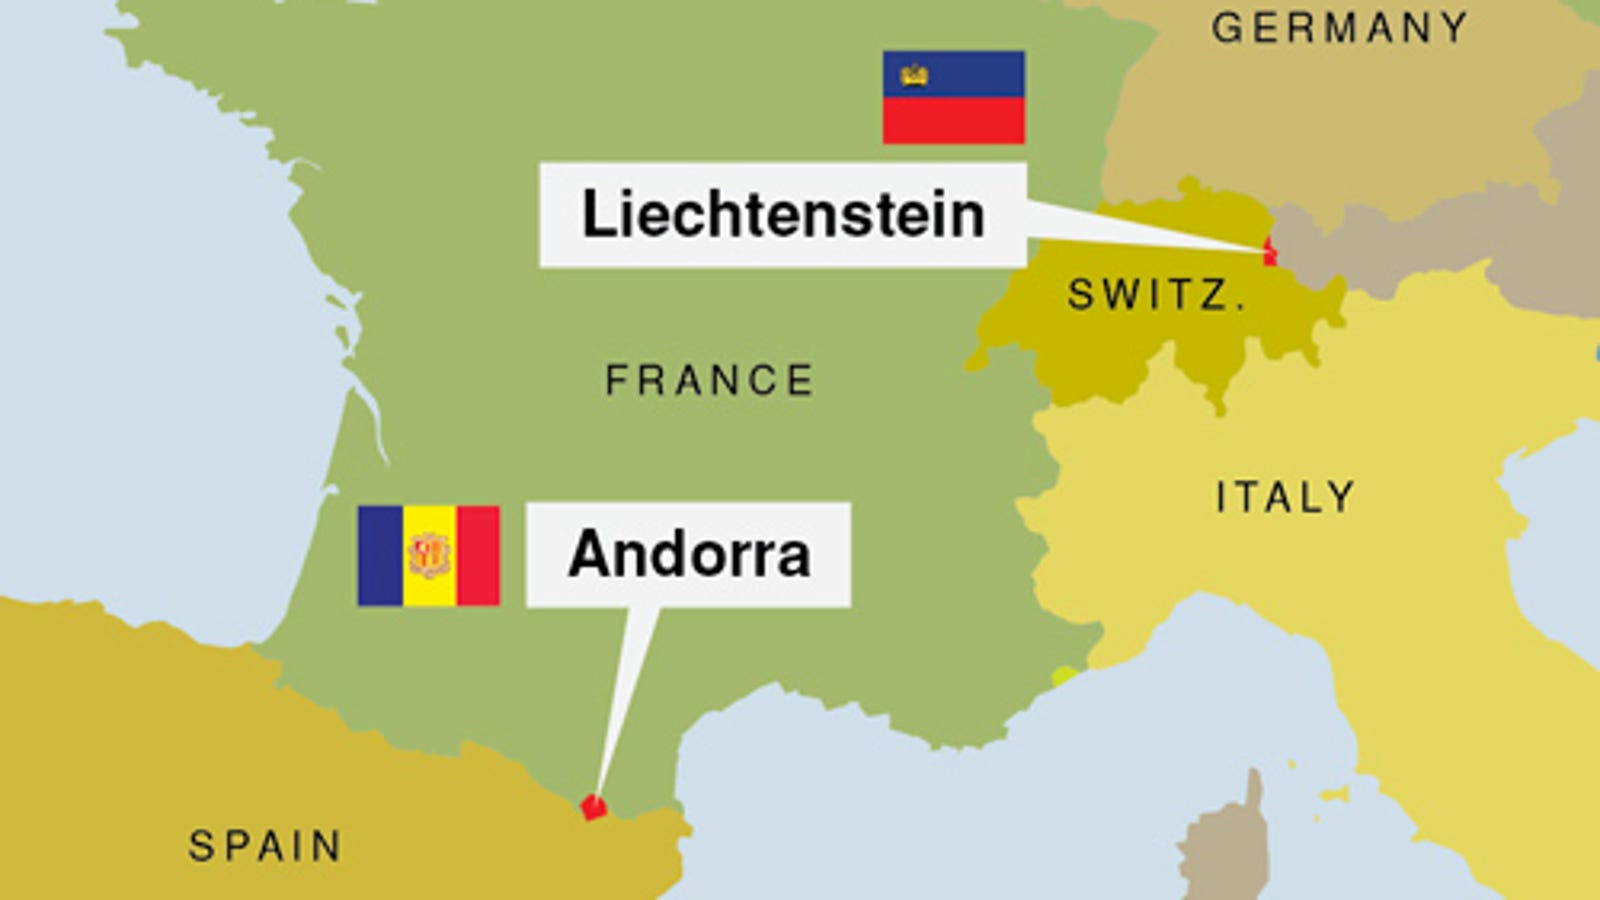 Map Of Spain France And Andorra.Liechtenstein Andorra Forced To Fight By Larger Countries